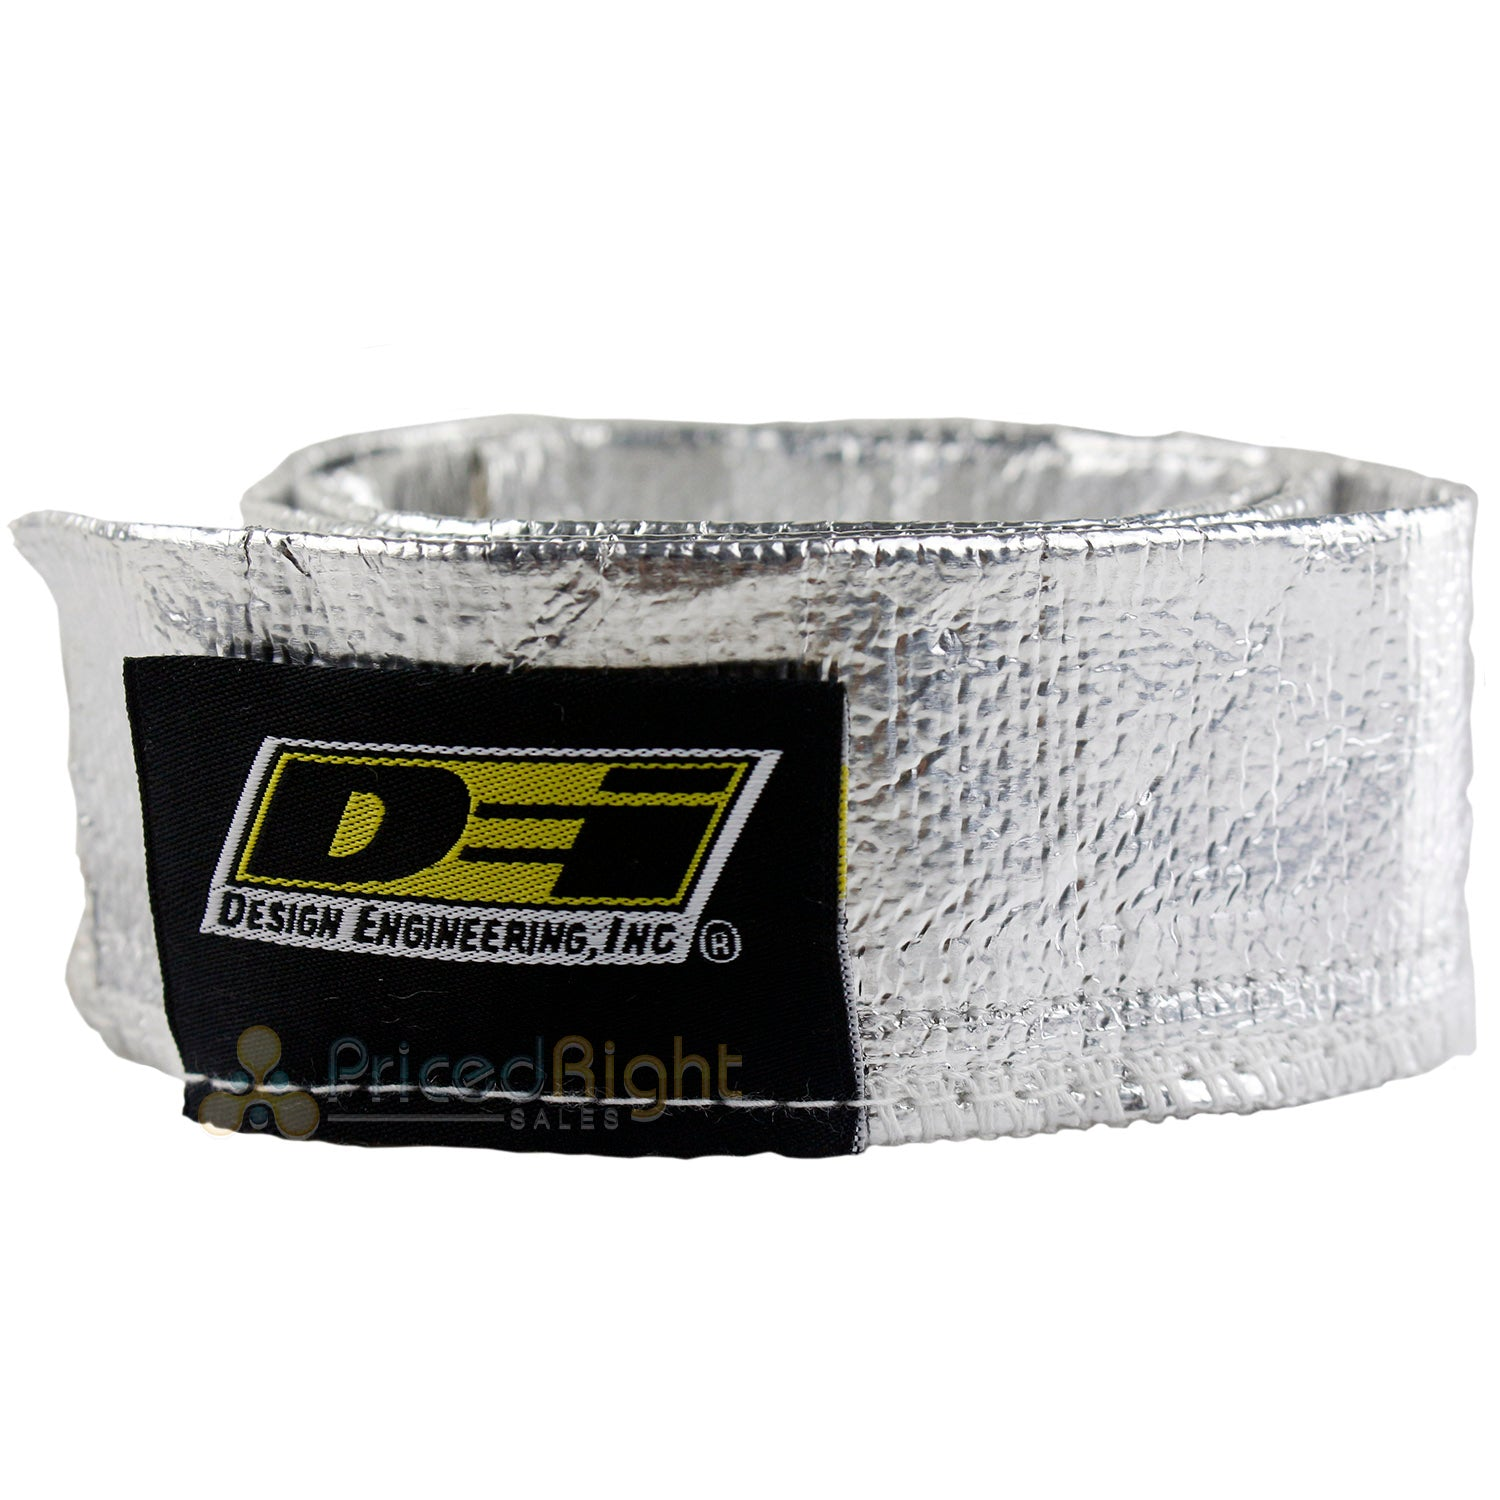 "Aluminized Heat Sheath Protective Sleeve 3/4"" x 36"" 3' Length DEI 010403"